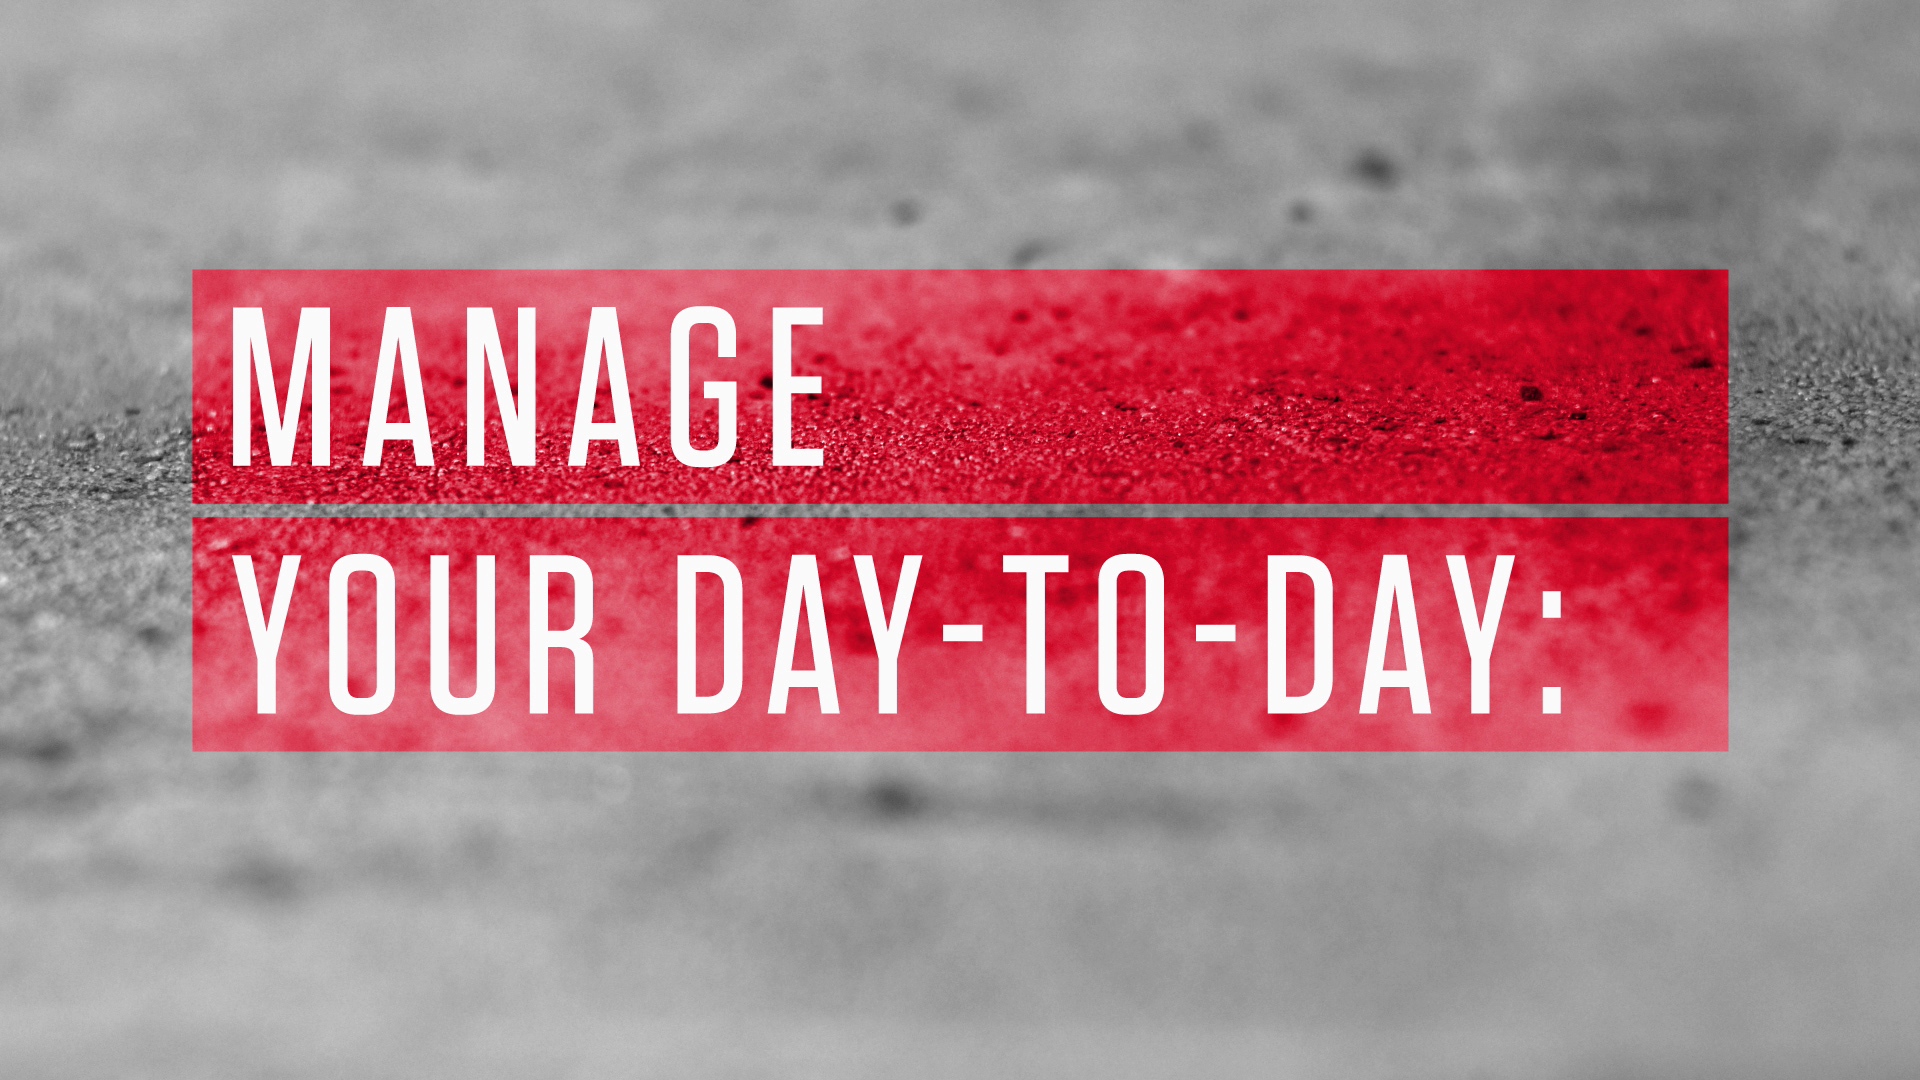 99U Manage Your<br>Day-To-Day